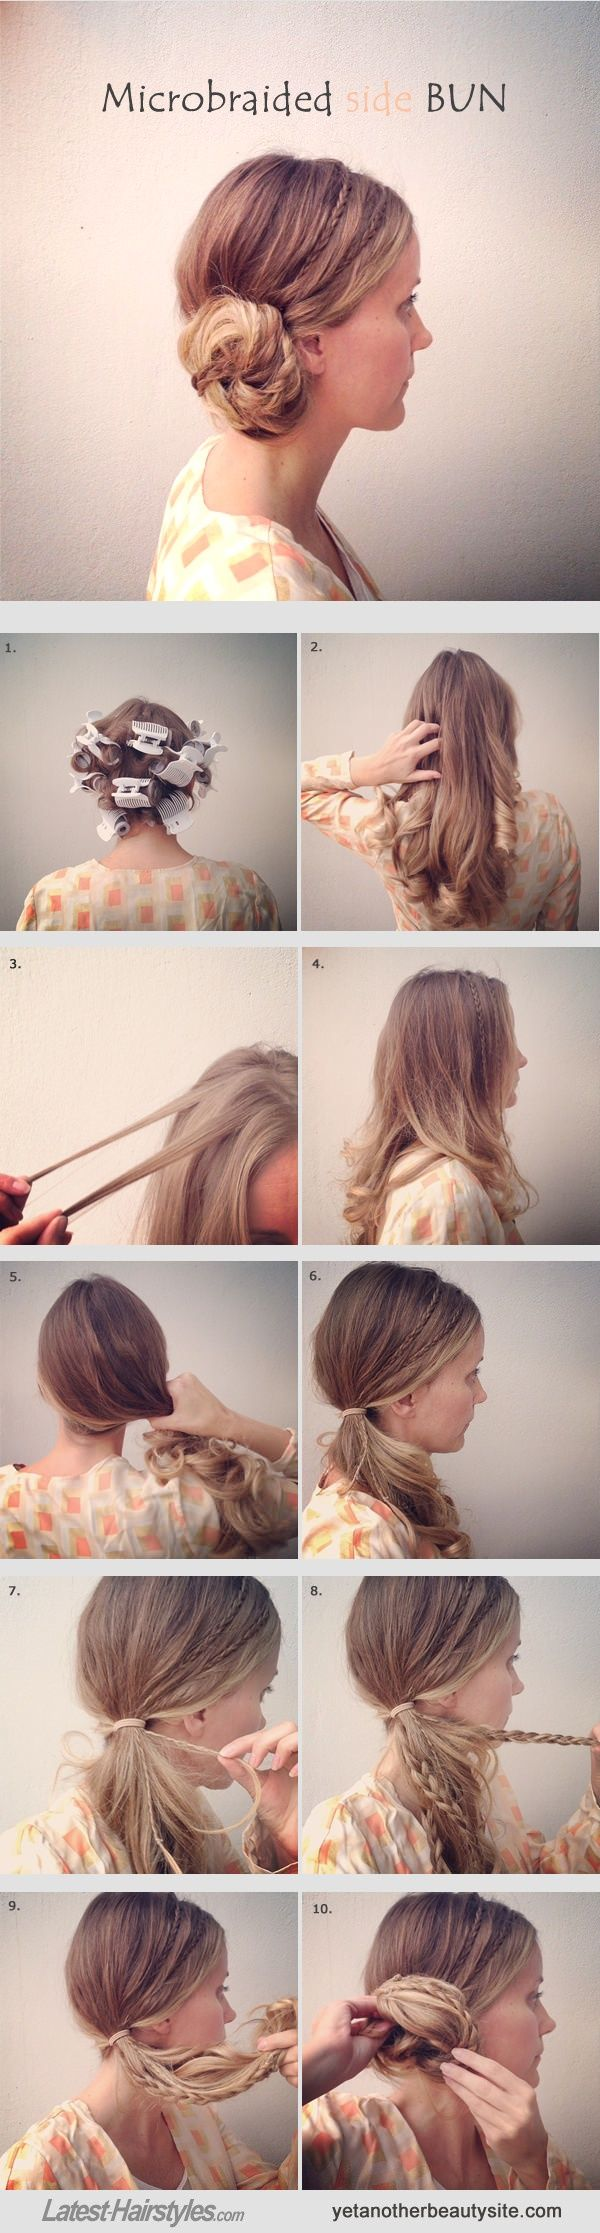 micro braids - Google Search  get more pictures www.hairbraidingn... nice one